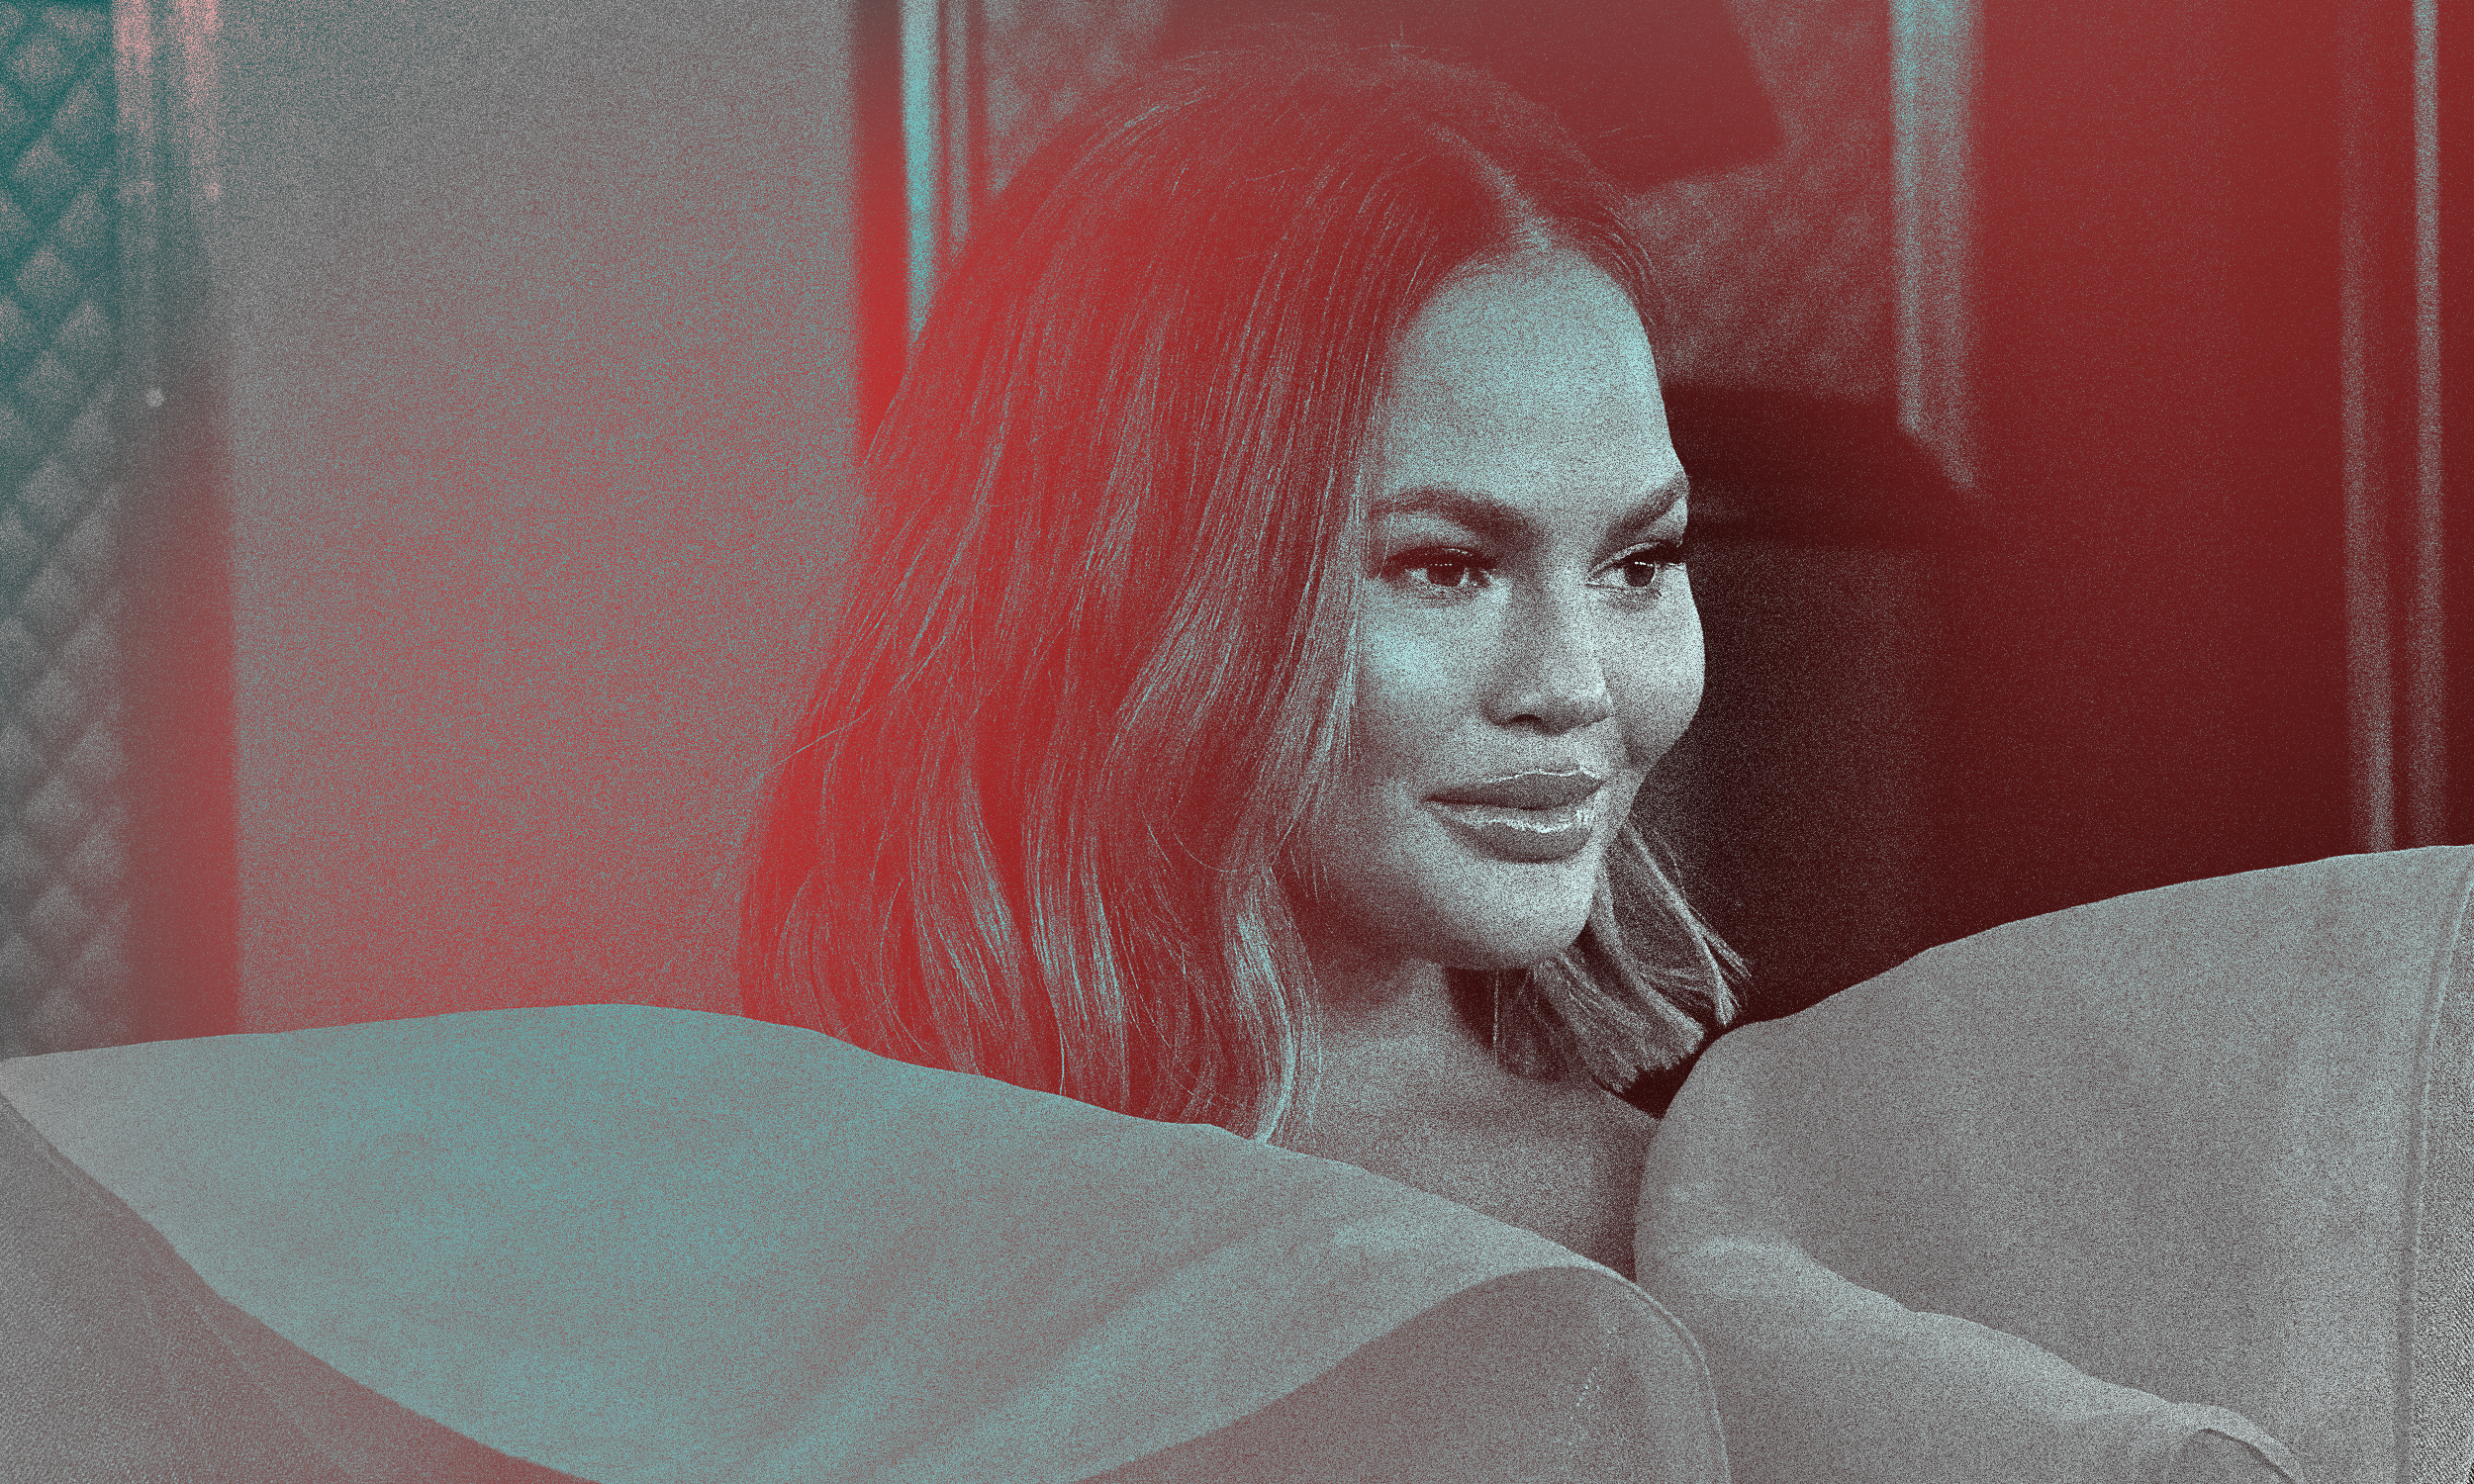 Why canceling Chrissy Teigen won't do what we think it will